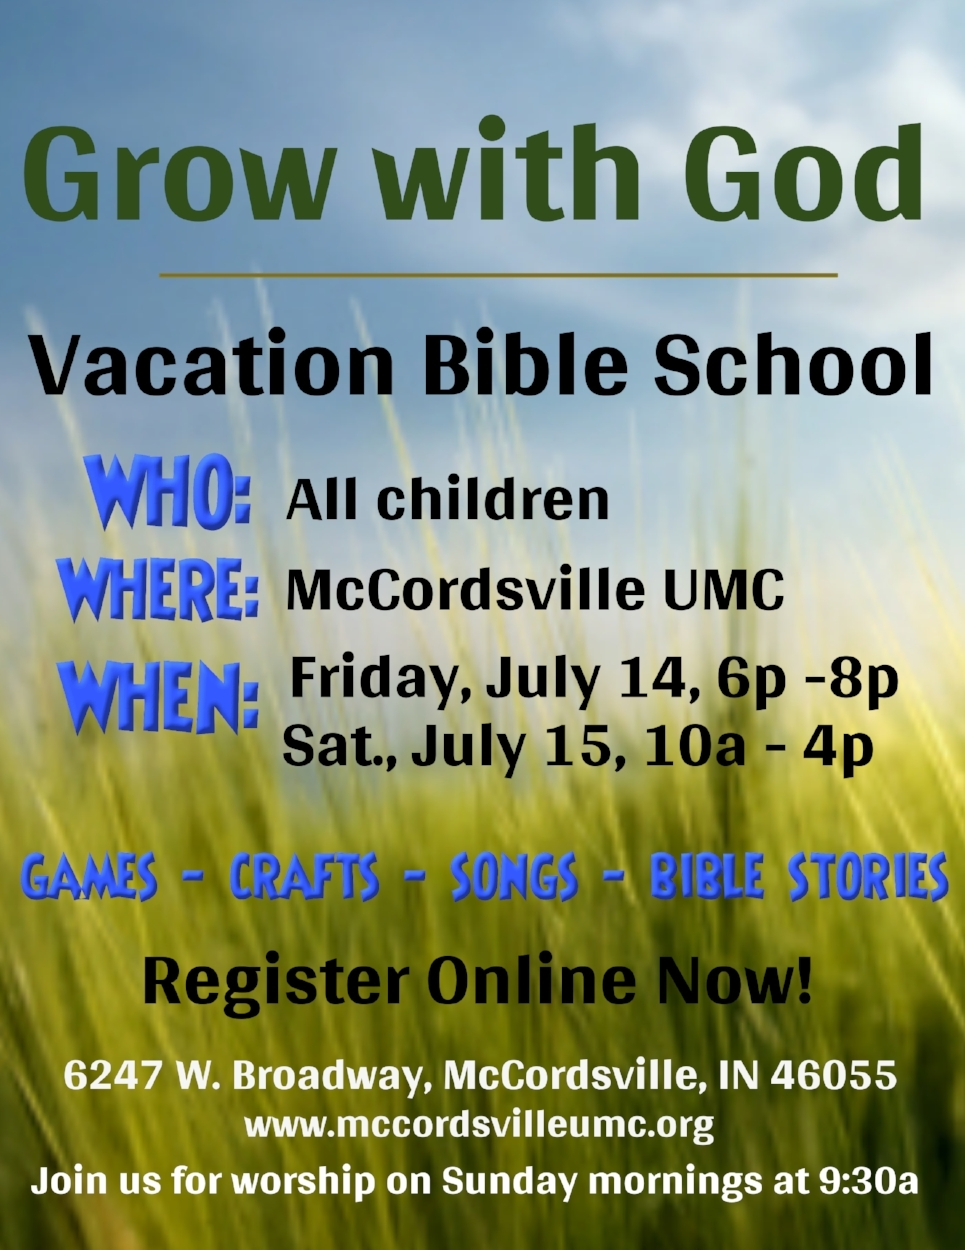 Vacation Bible School is here! - Don't forget to register your kids for our 2017 Vacation Bible School, Grow With God!!